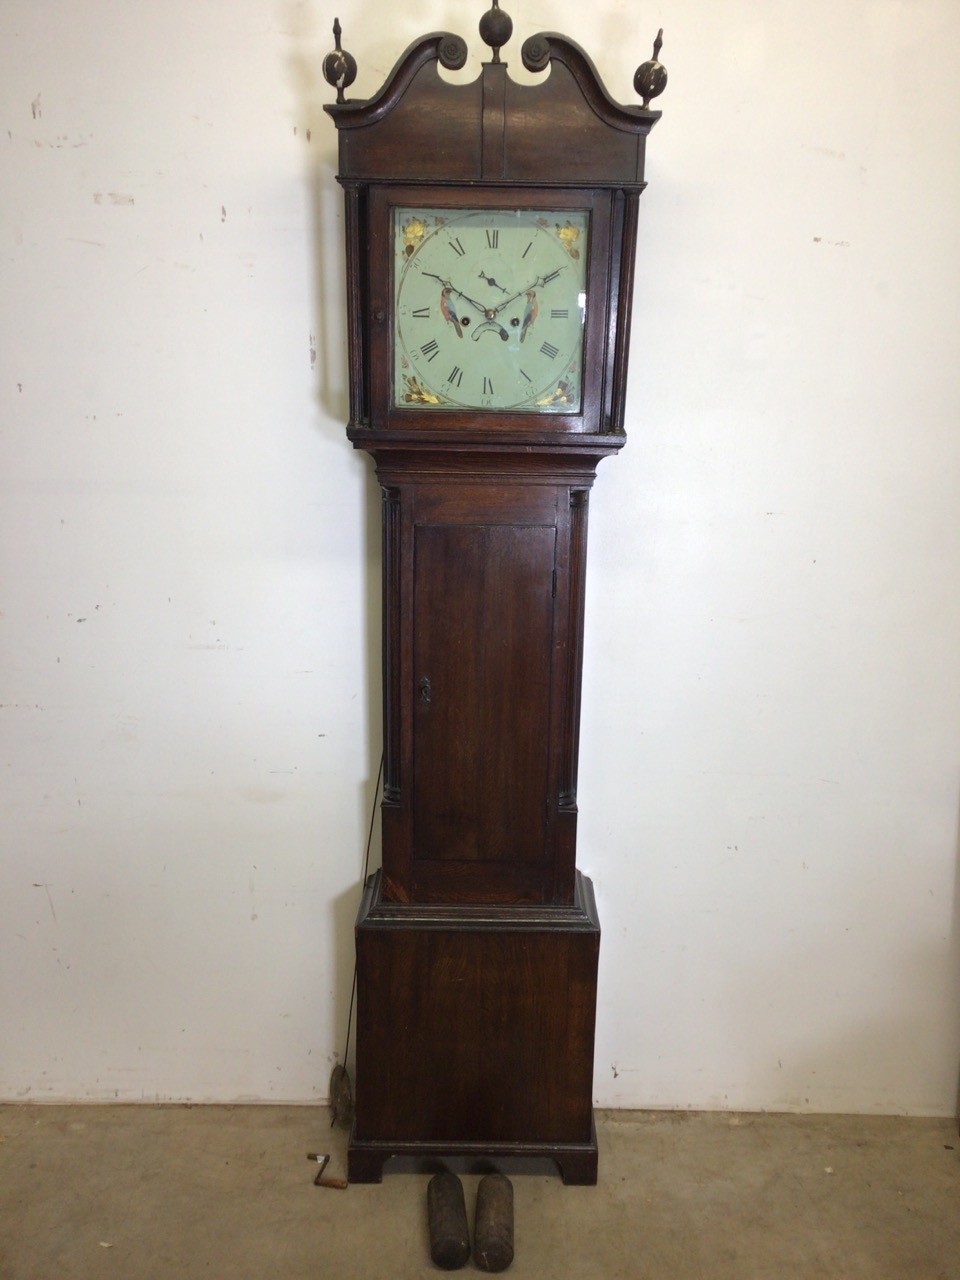 An 8 day mahogany longcase clock with weights and pendulum and key with painted face depicting birds